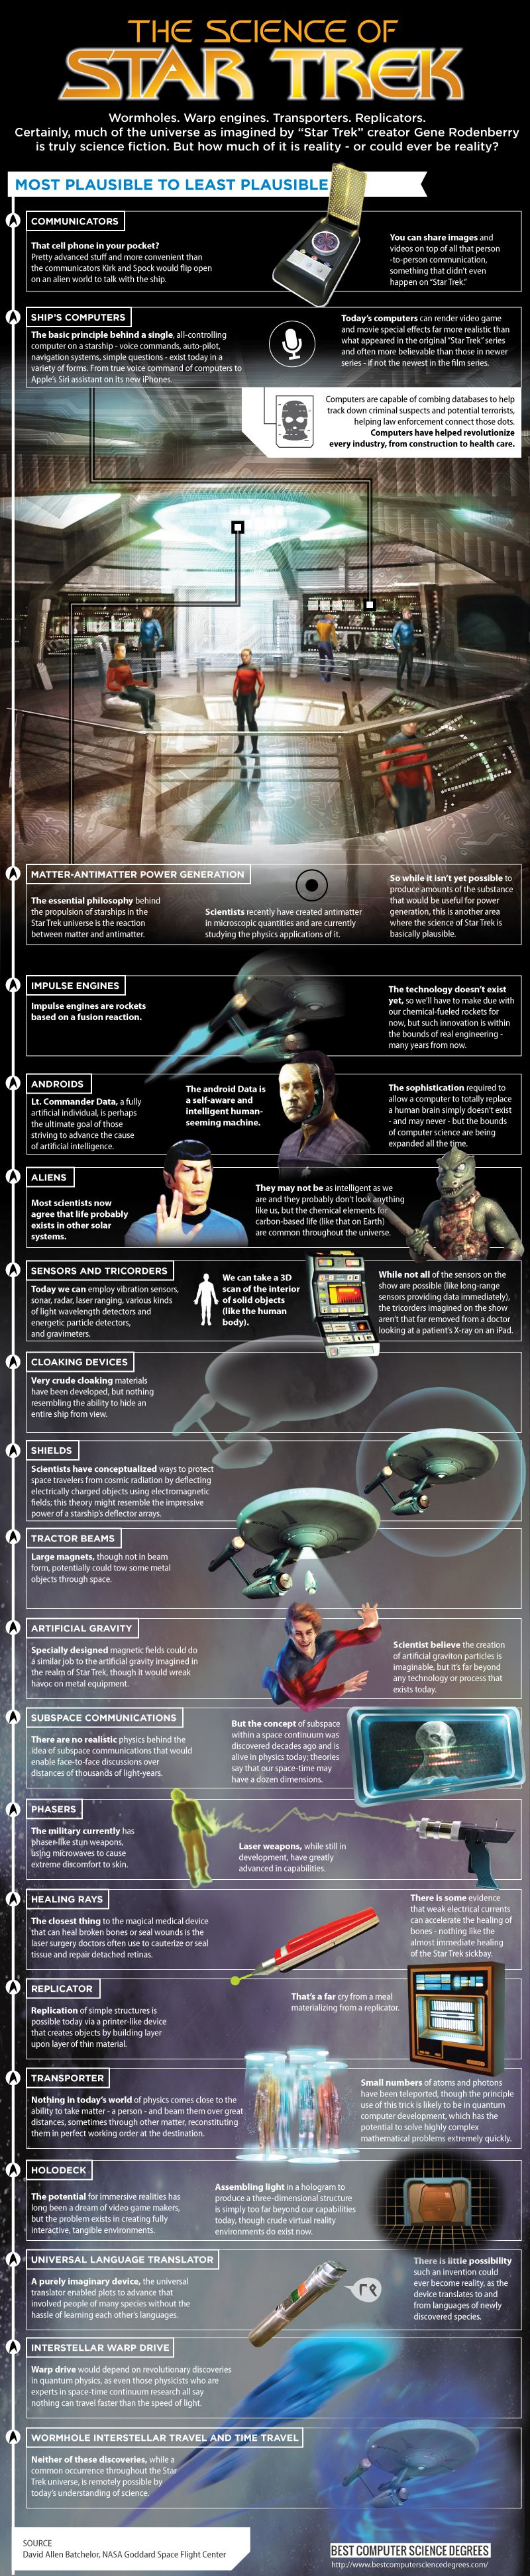 The Science of Star Trek!  This is interesting to any curious mind, and of course super cool to any Sci-Fi fan.  Check out our Annual list of the Best Sci-Fi products:  http://ufoWisconsin.com/science-fiction-best-gift-ideas-list-2012.html